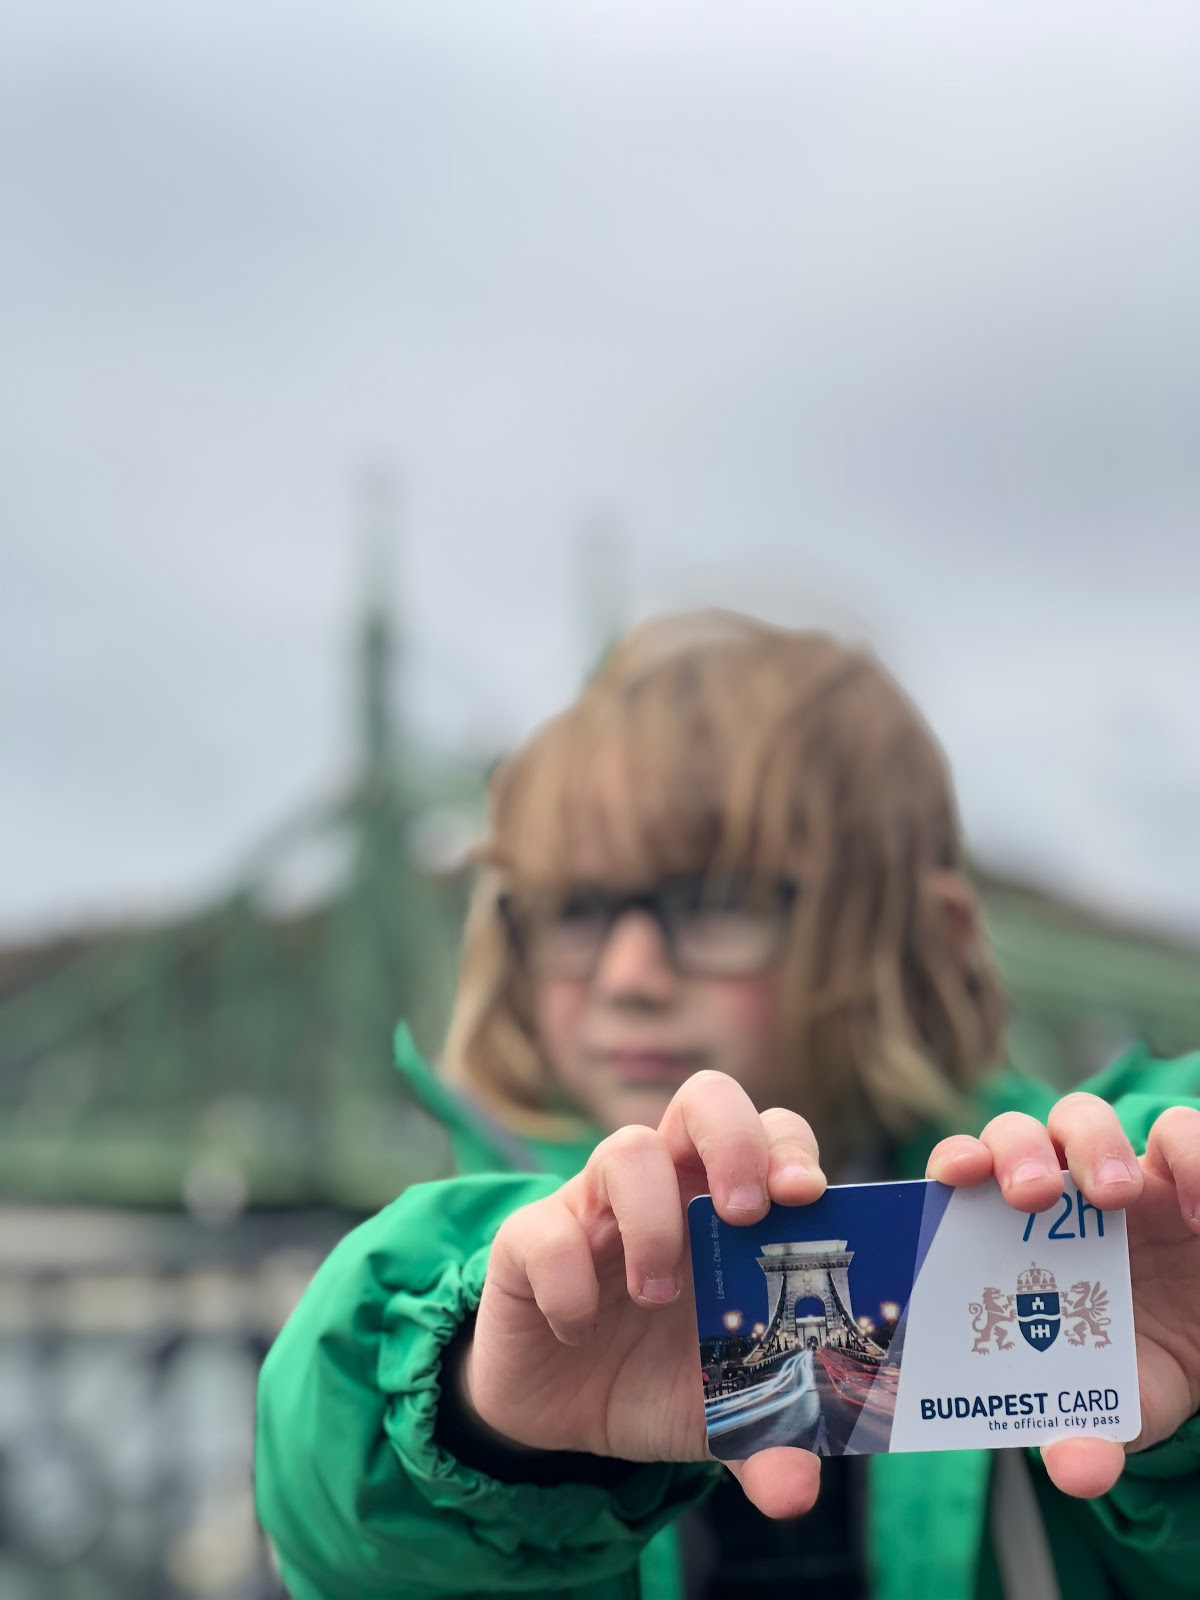 Young boy holding the Budapest travel card